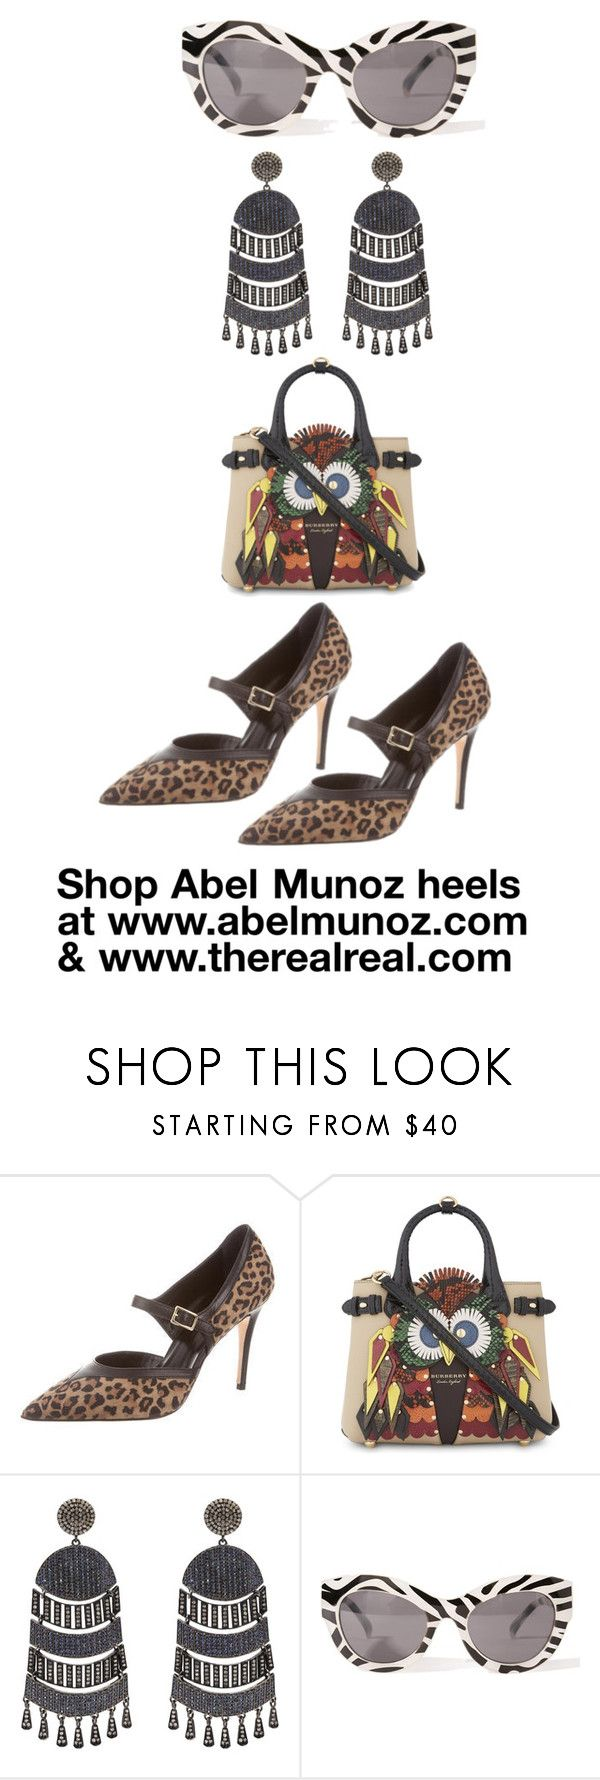 www.therealreal.com by abelmunozaccessories on Polyvore featuring Abel Muñoz, Burberry, Nush, Cheap Monday and mayabee88